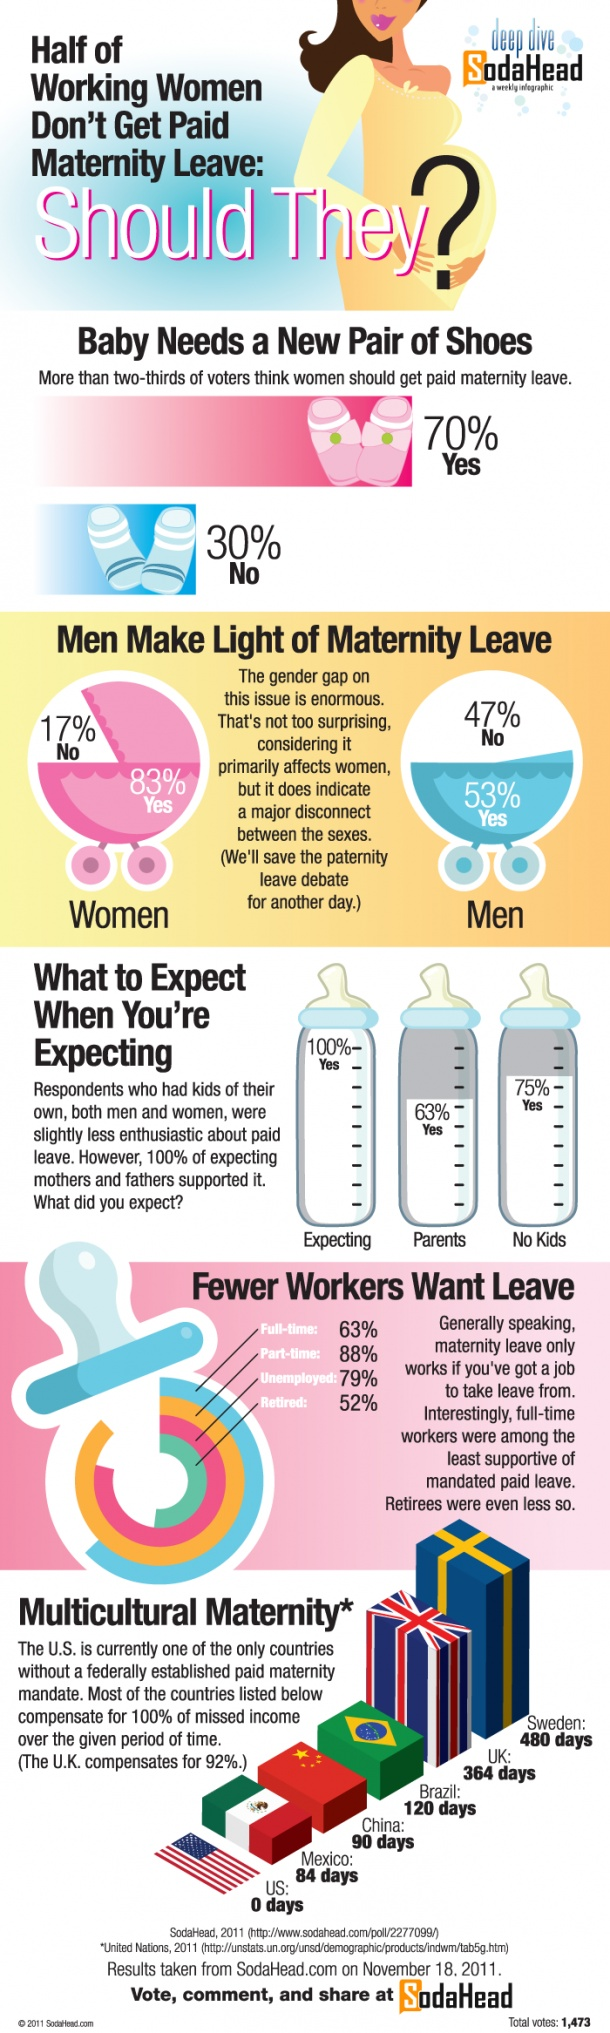 Half of Working Women Don't Get Paid Maternity Leave: Should They? [INFOGRAPHIC]